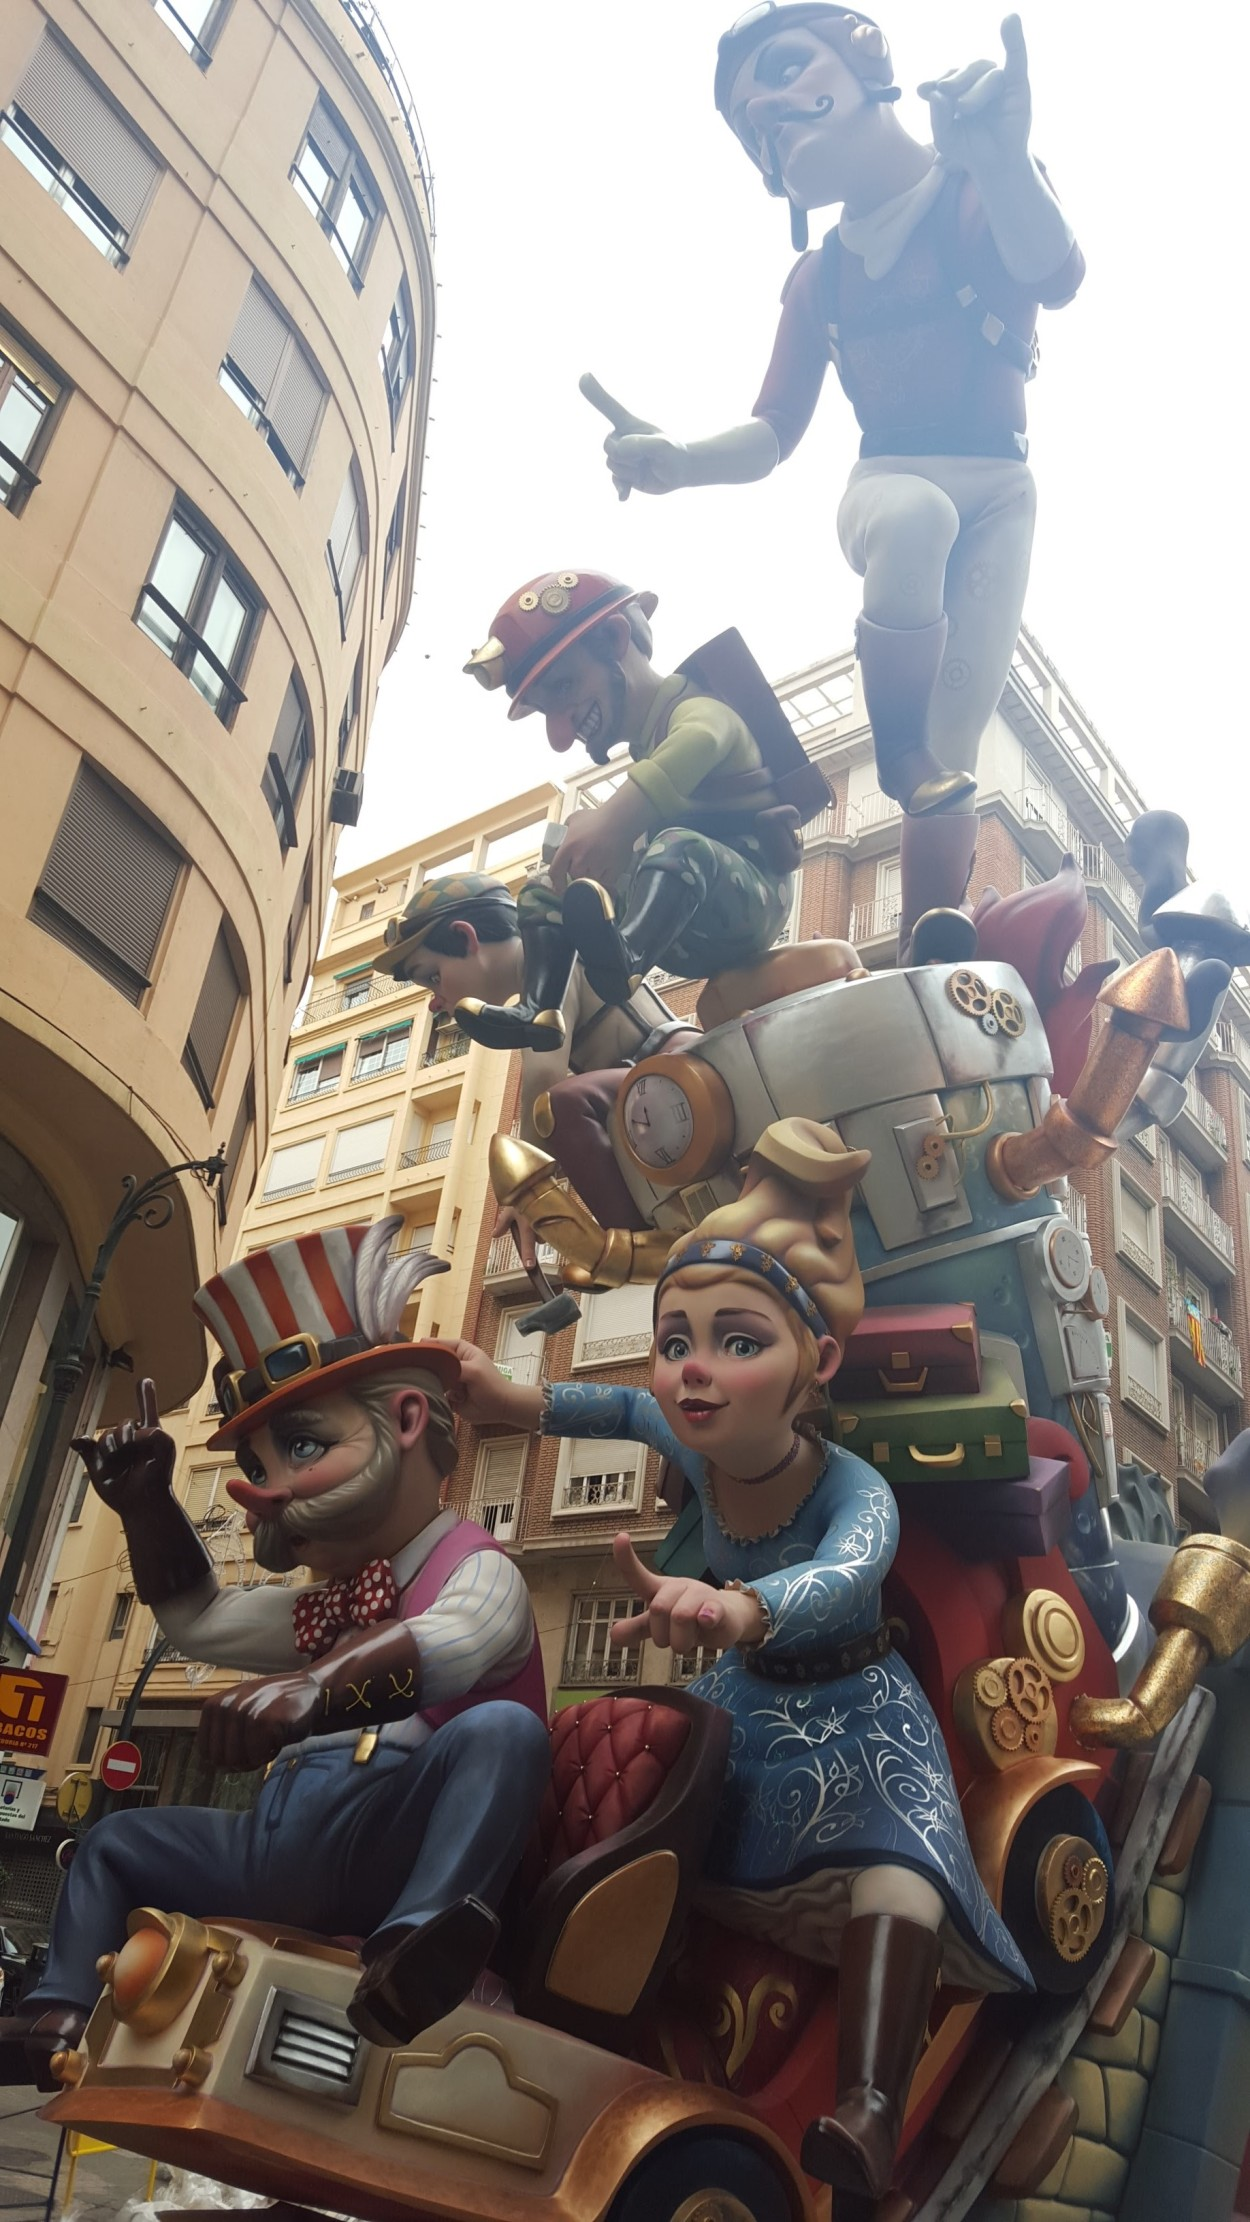 During the celebration of Fallas in Valencia, these statues called can be found throughout the city. It's a great excuse to see the city.